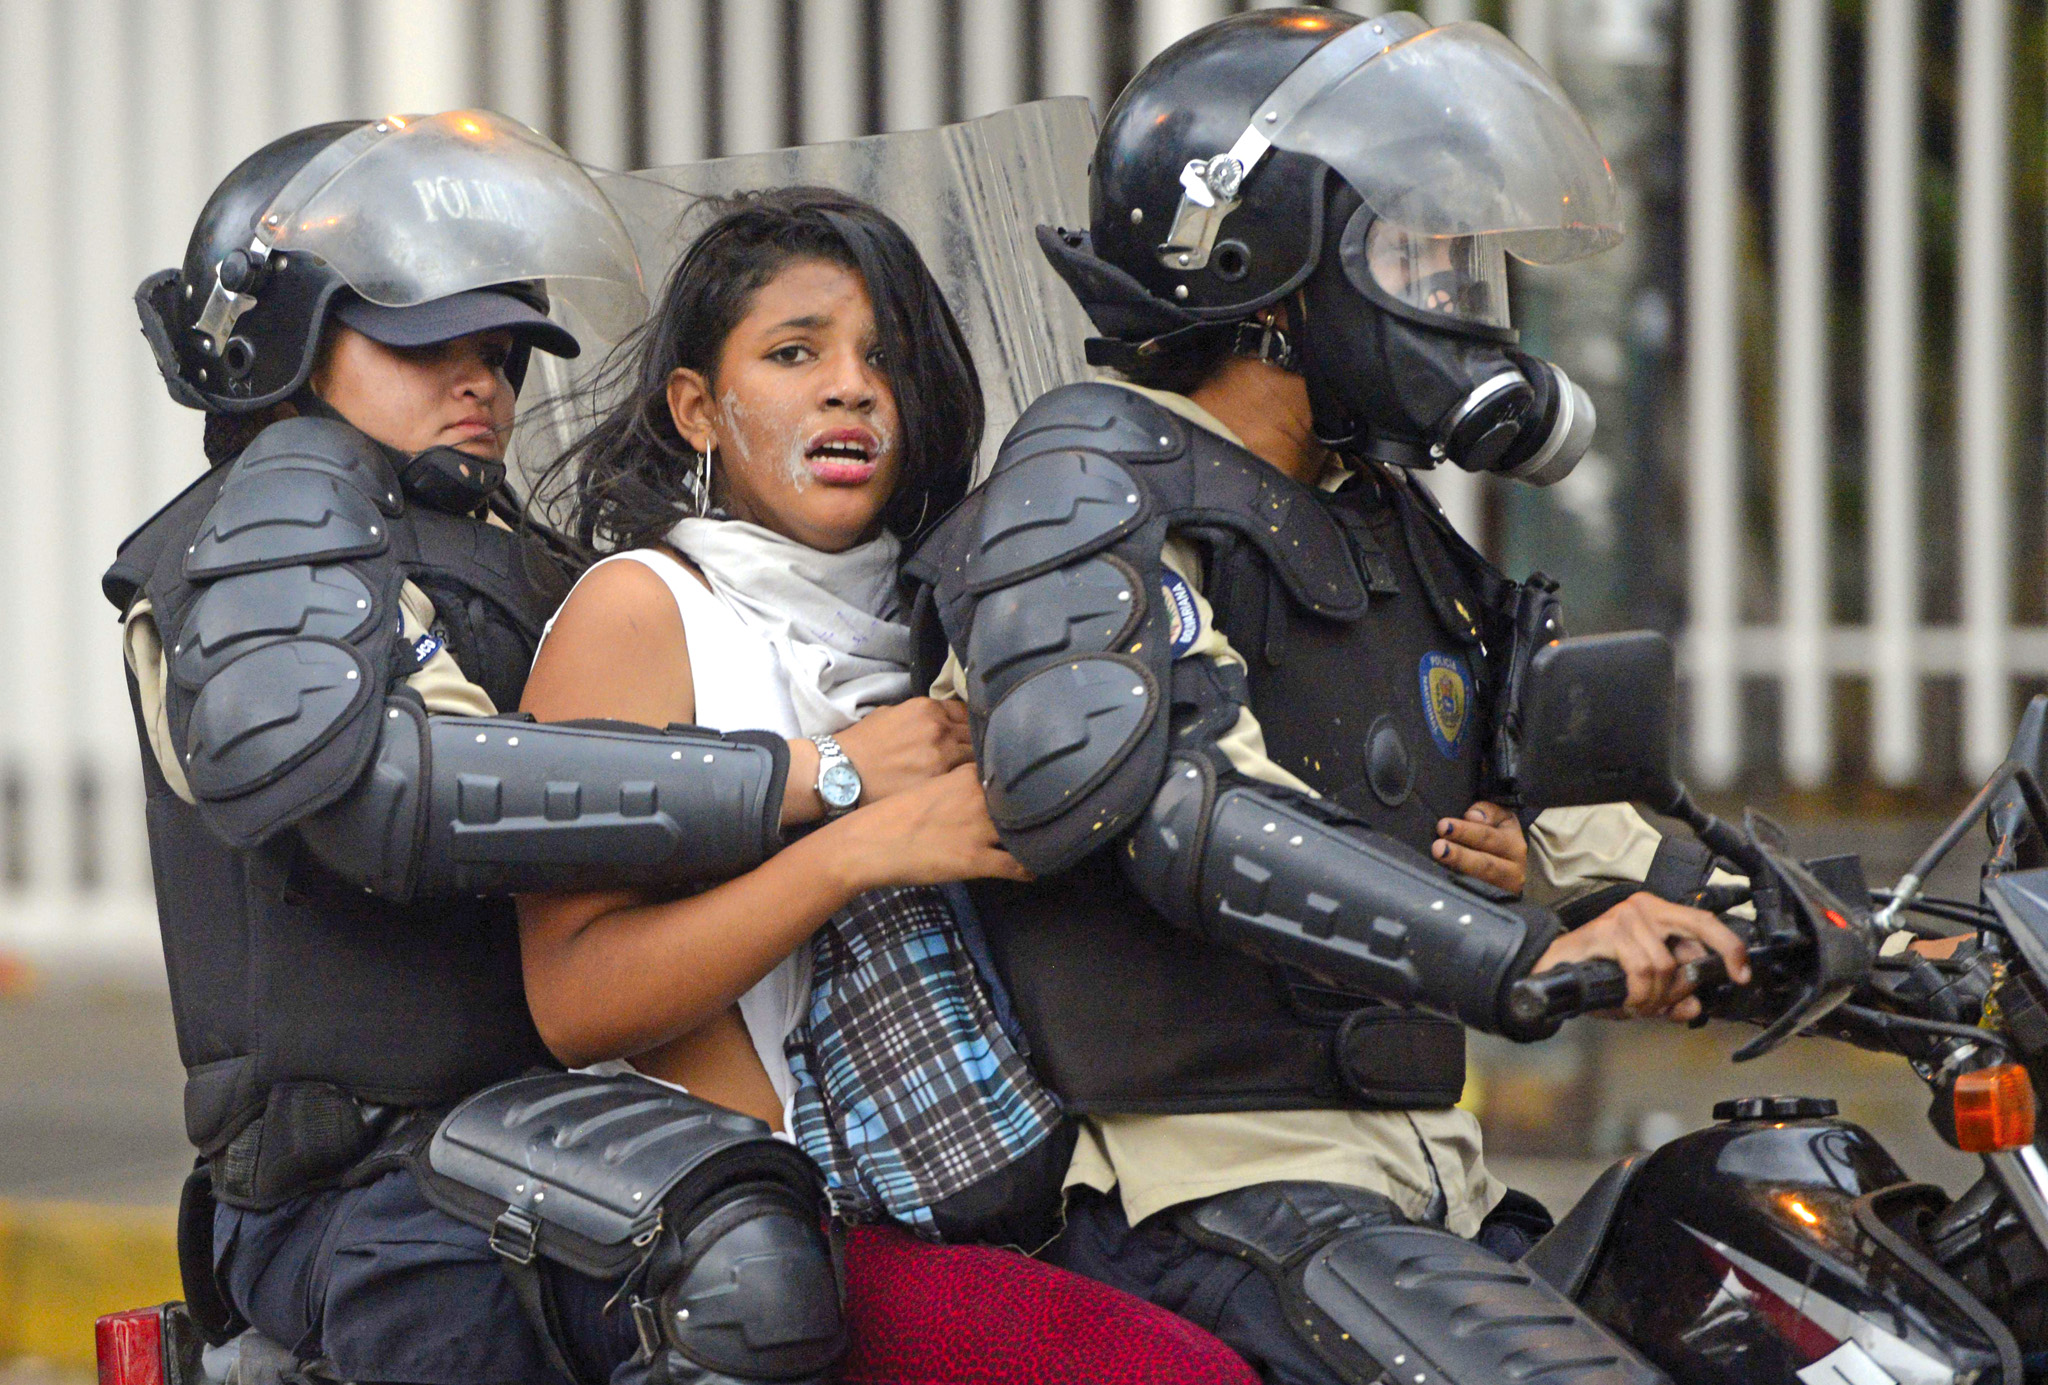 TOPSHOTS An anti-government activist is ...TOPSHOTS An anti-government activist is arrested by national police during a protest against Venezuela President Nicolas Maduro government in Caracas on March 13, 2014. A total of 28 people have been killed and 365 inju